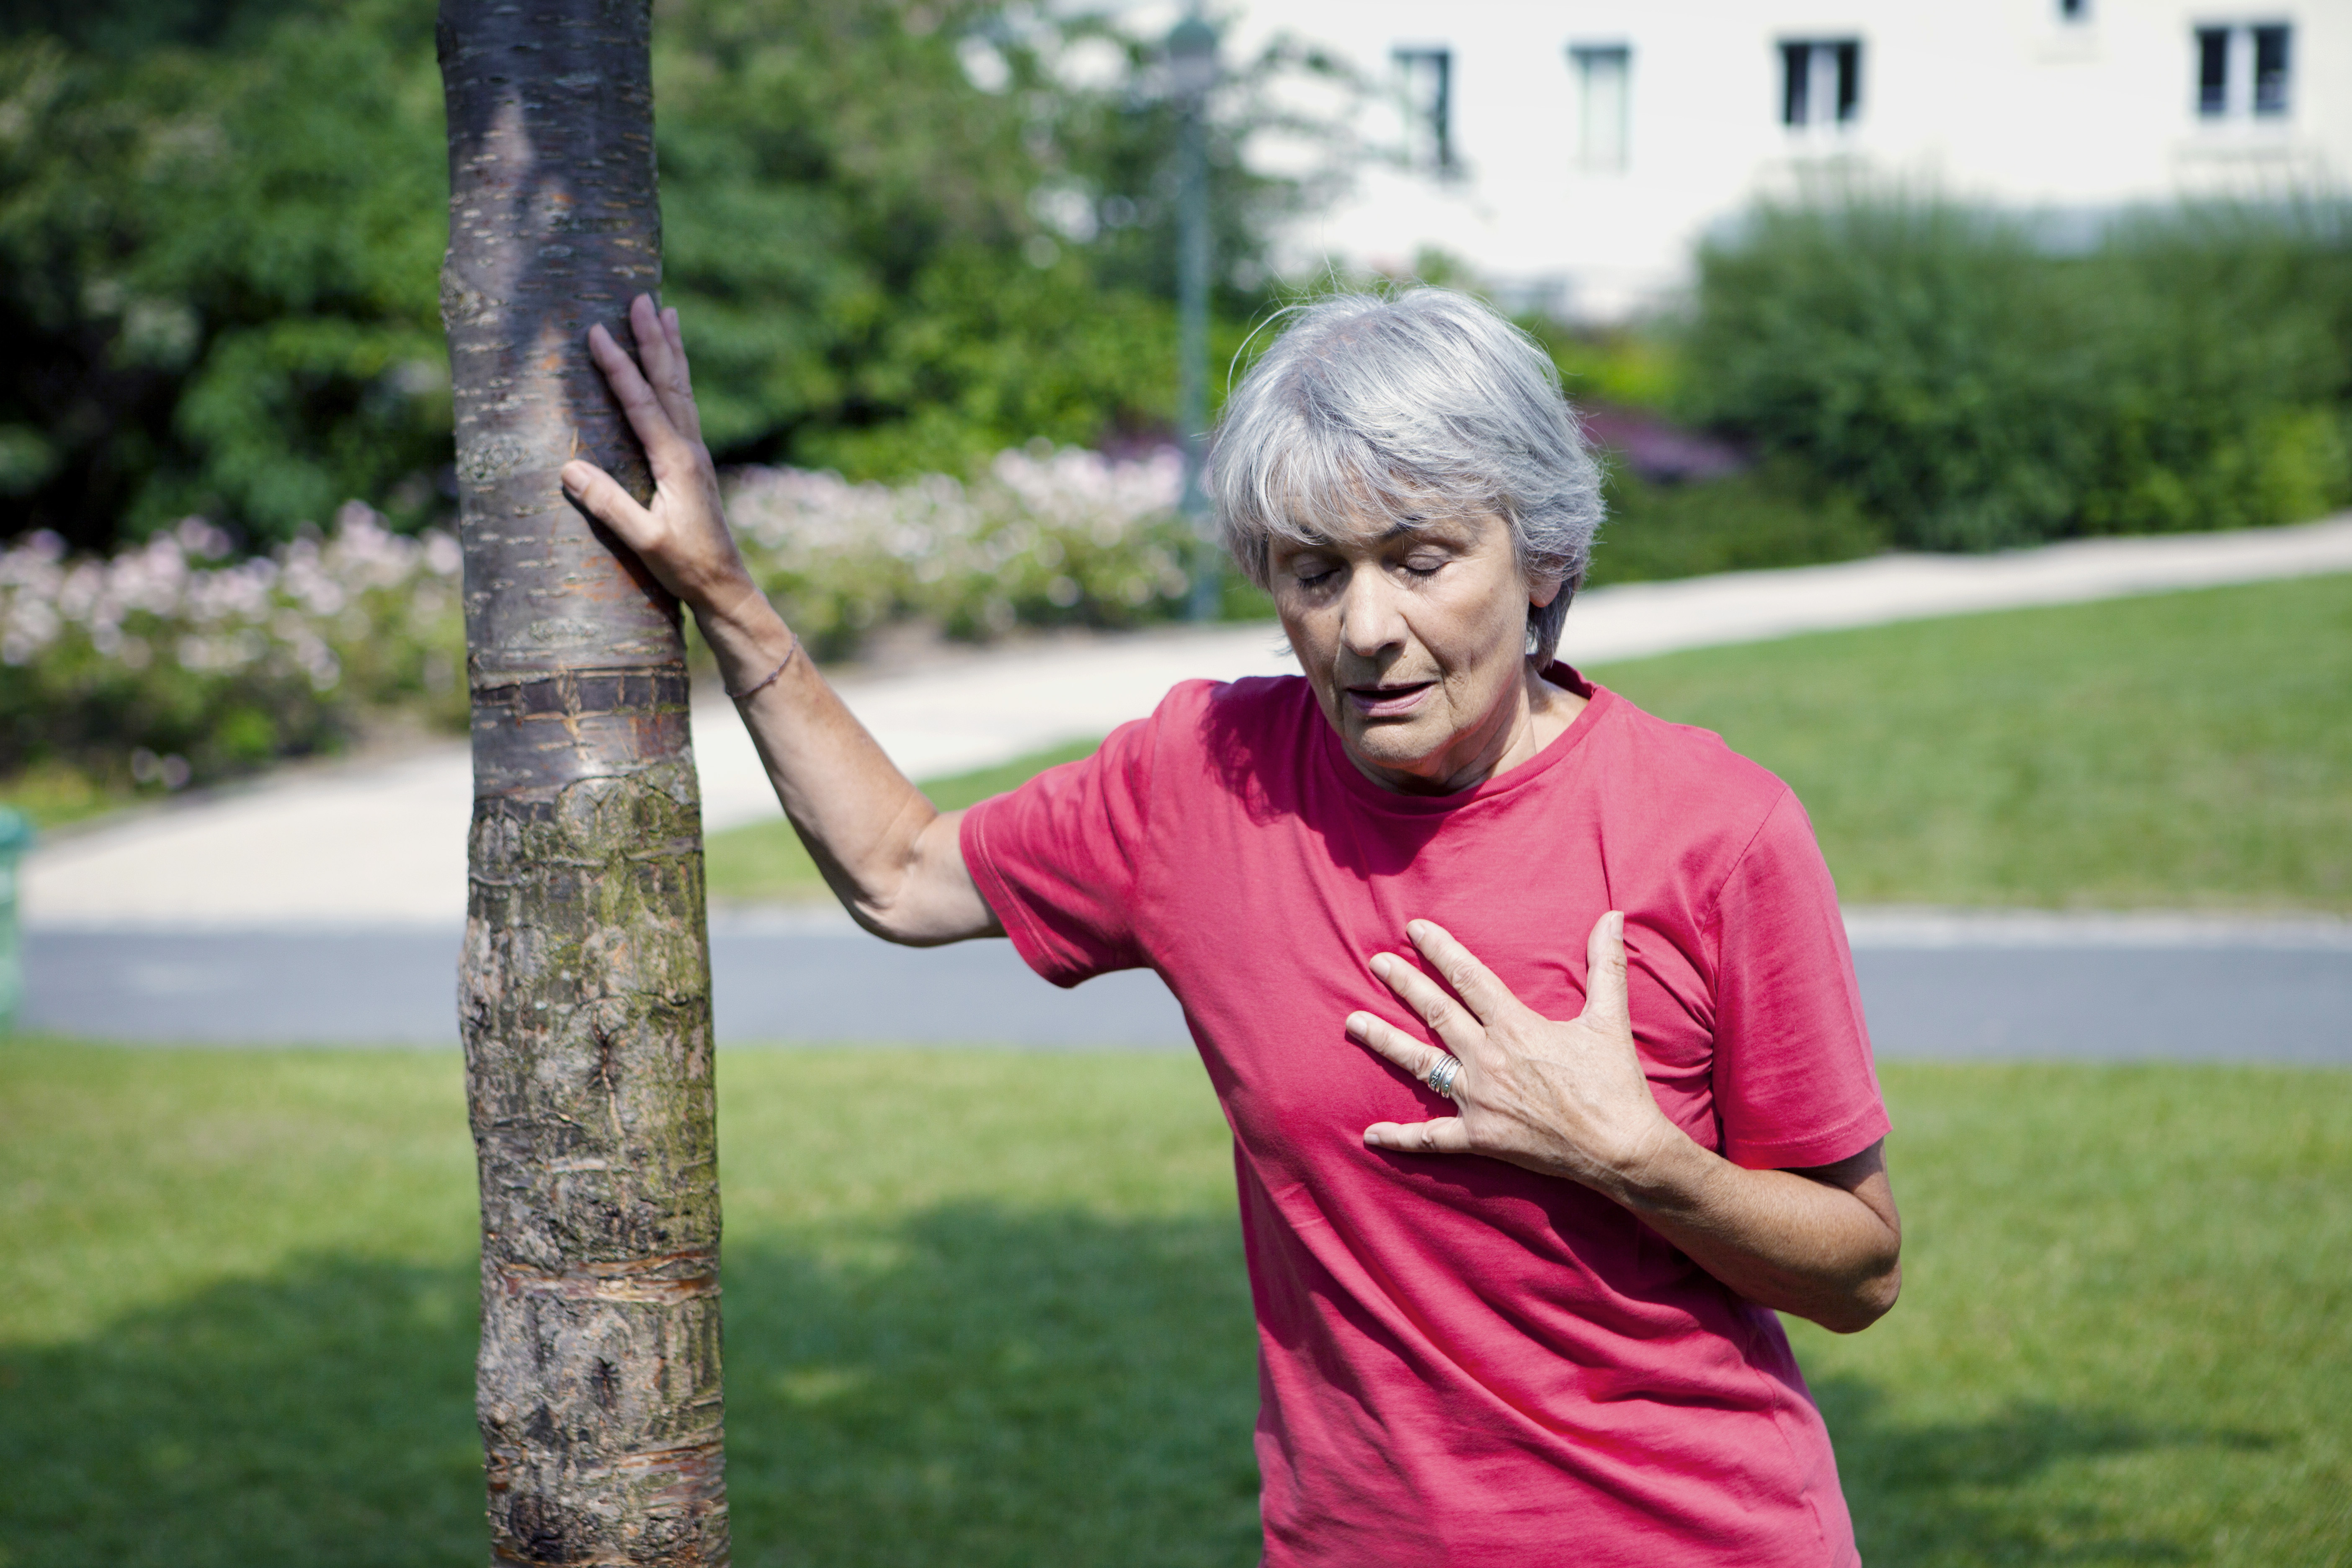 European Review of Exercise and COPD Highlights Importance of Physical Activity